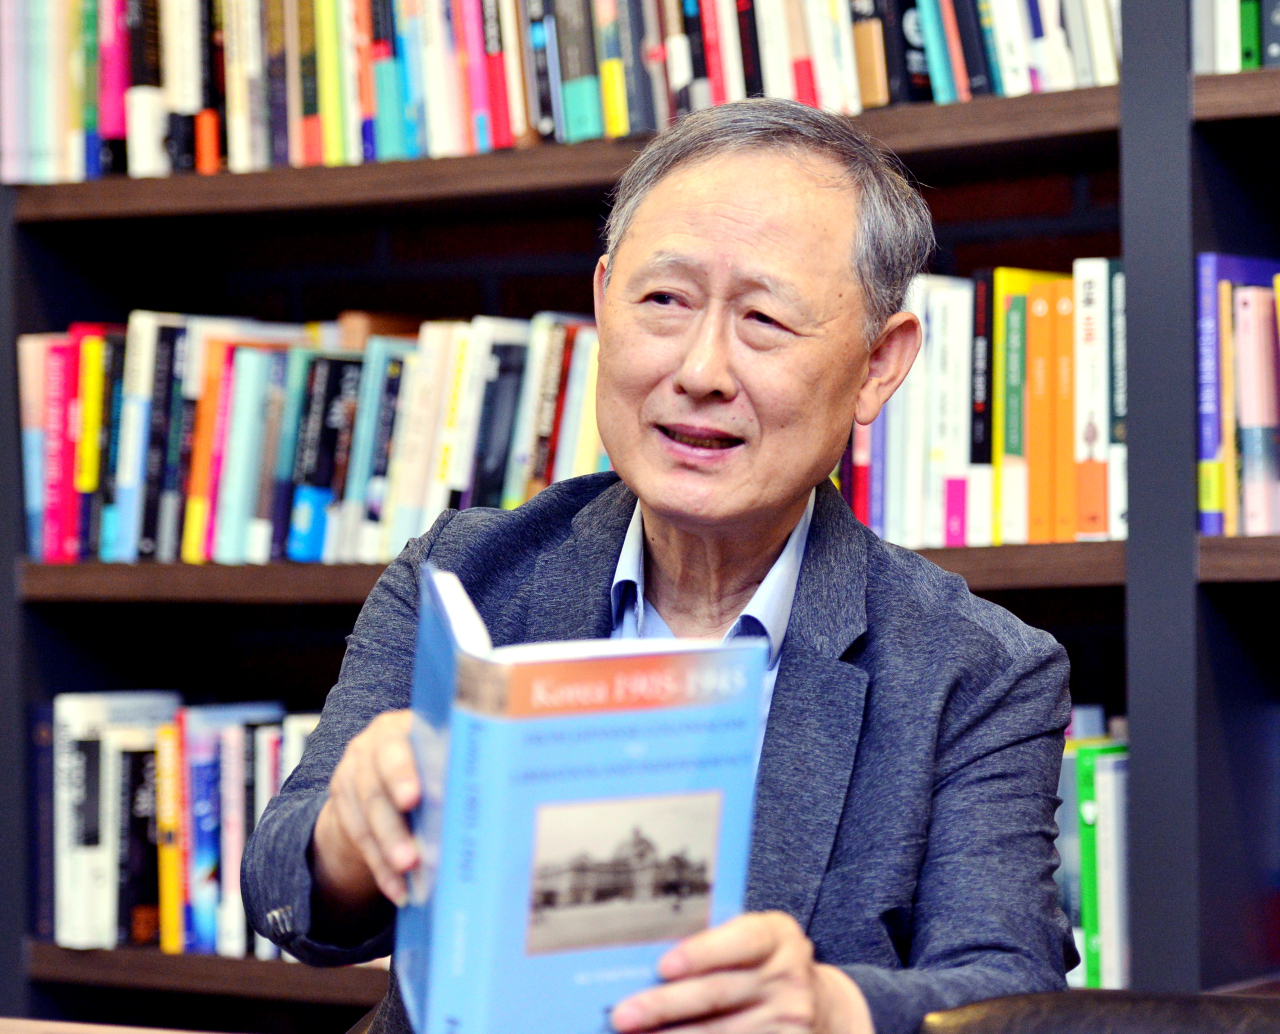 """Professor Ku Dae-yeol poses with his new book """"Korea 1905-1945: From Japanese Colonialism to Liberation and Independence,"""" during an interview with The Korea Herald. (Park Hyun-koo/The Korea Herald)"""